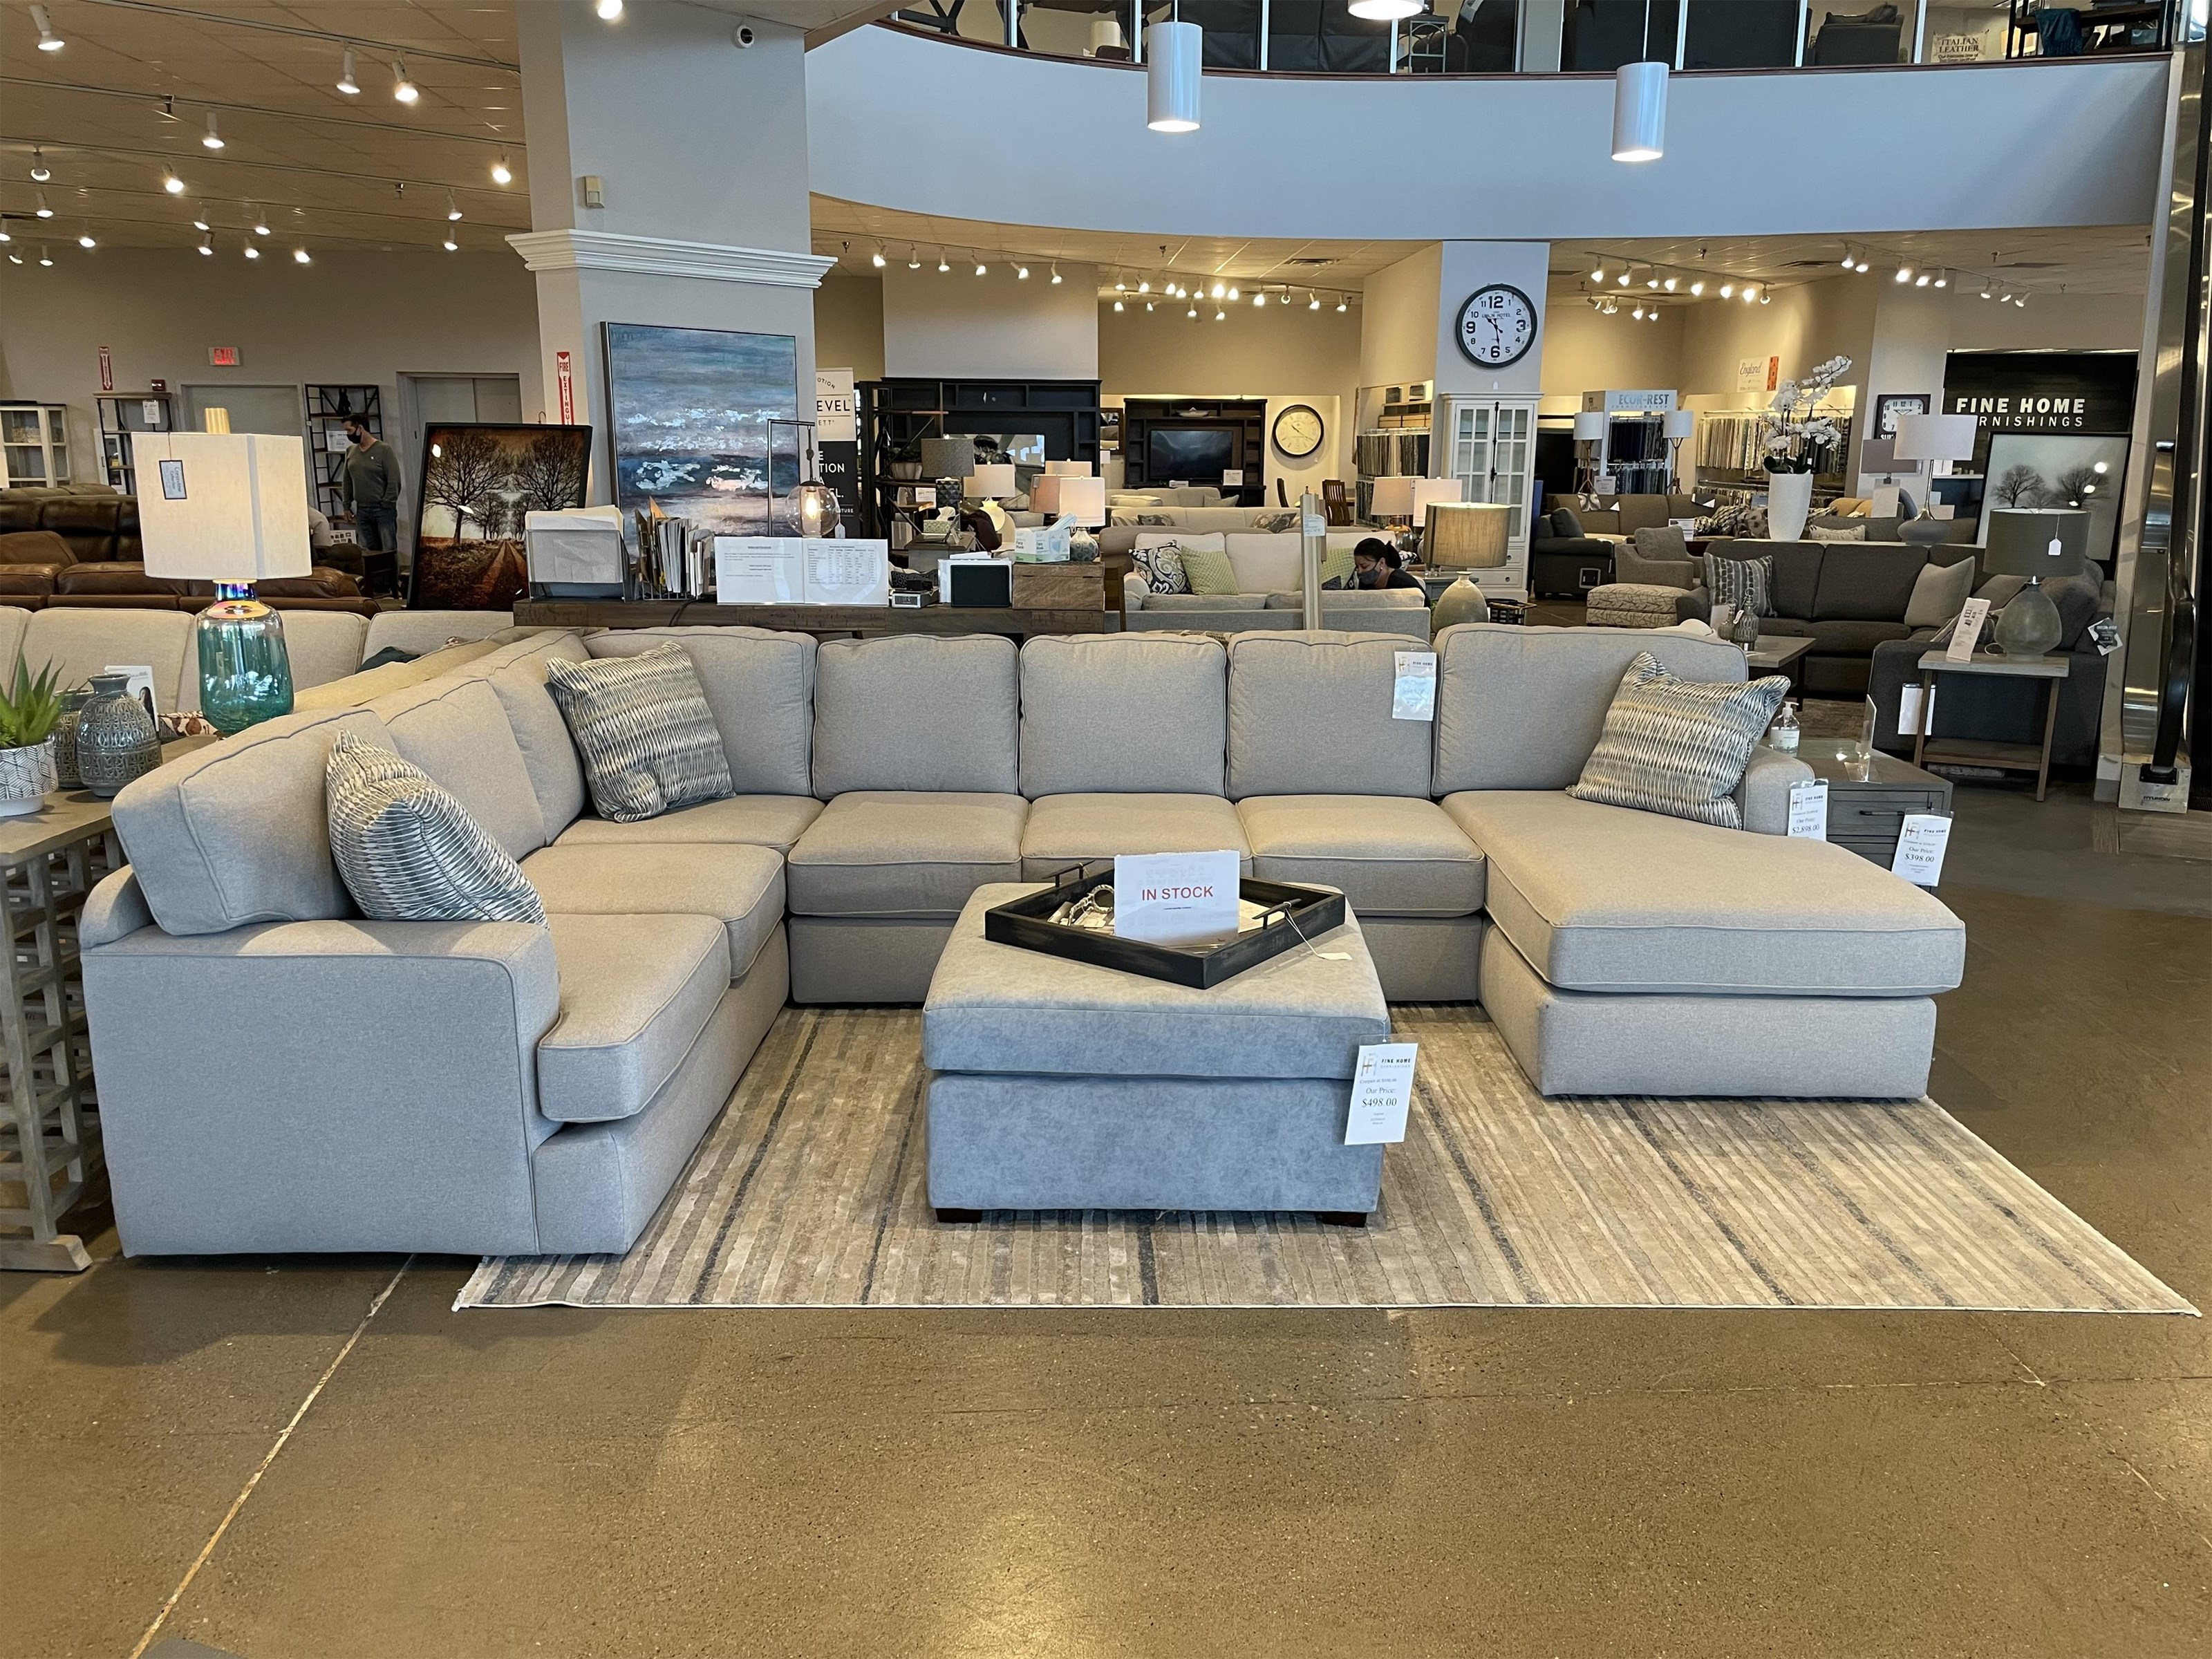 Rouse 4-Piece Sectional by England at Fine Home Furnishings